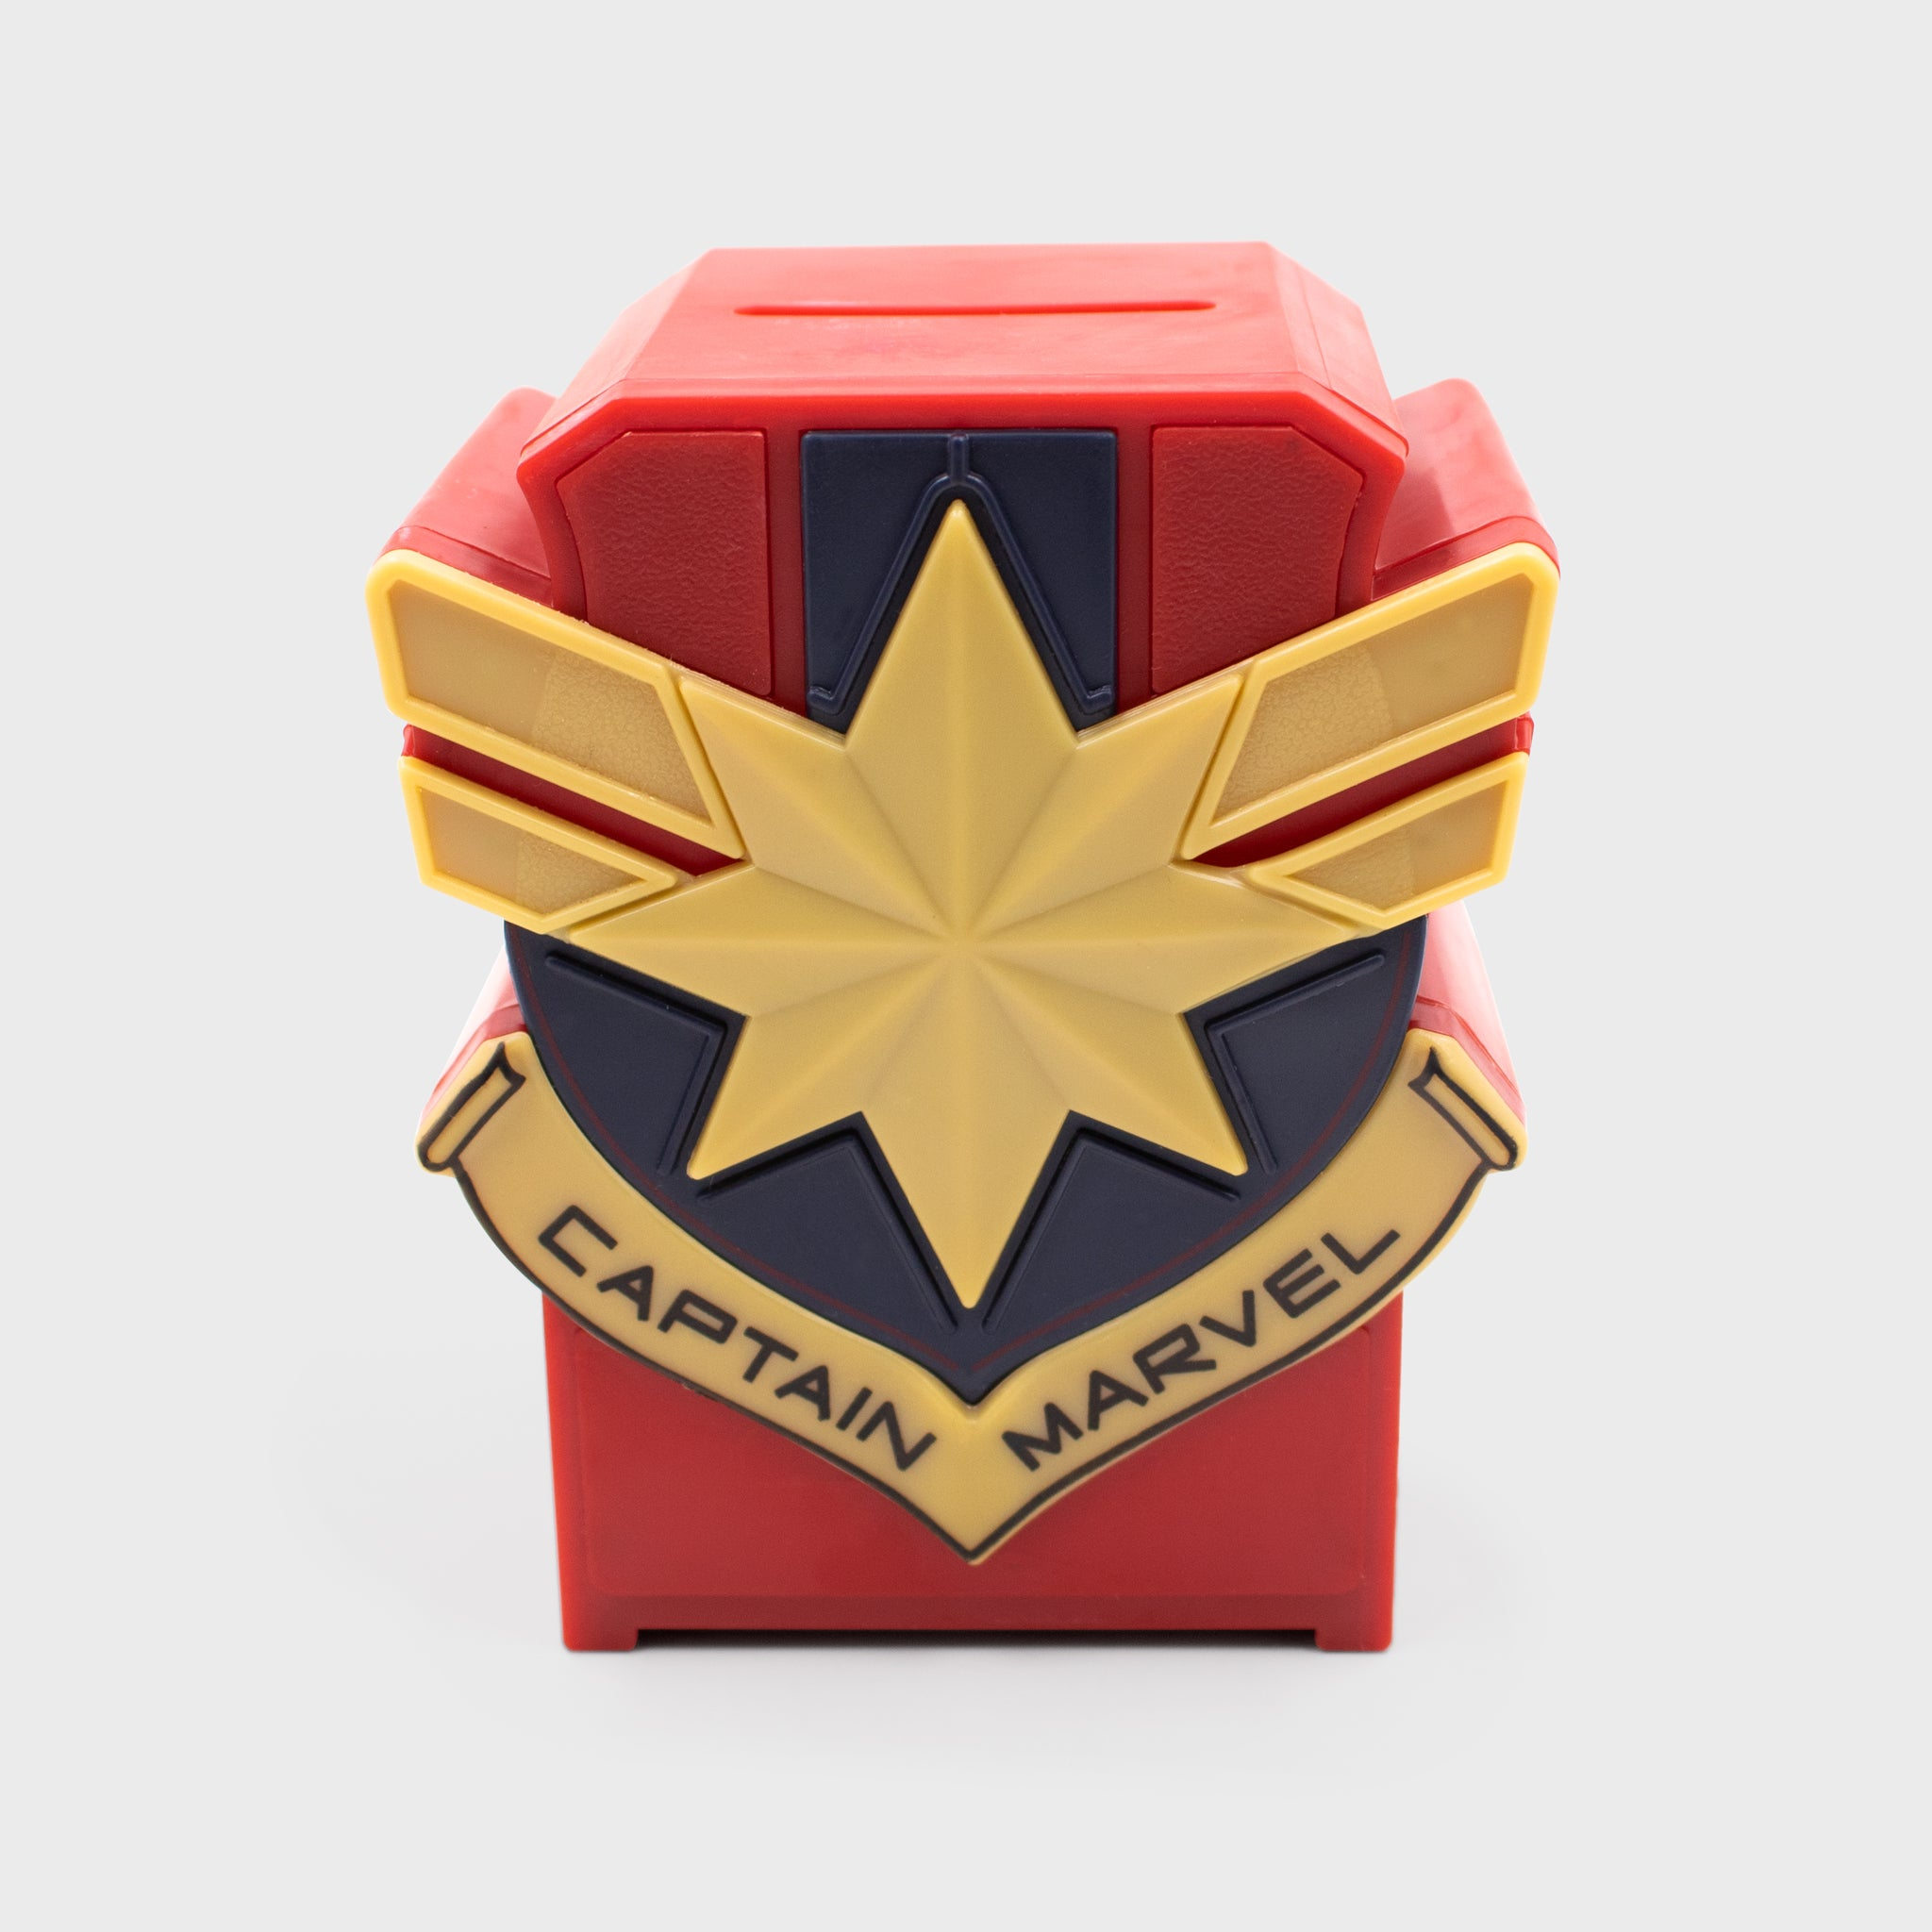 captain marvel marvel entertainment mcu movie superhero coin bank piggy bank collectible collector exclusive box culturefly